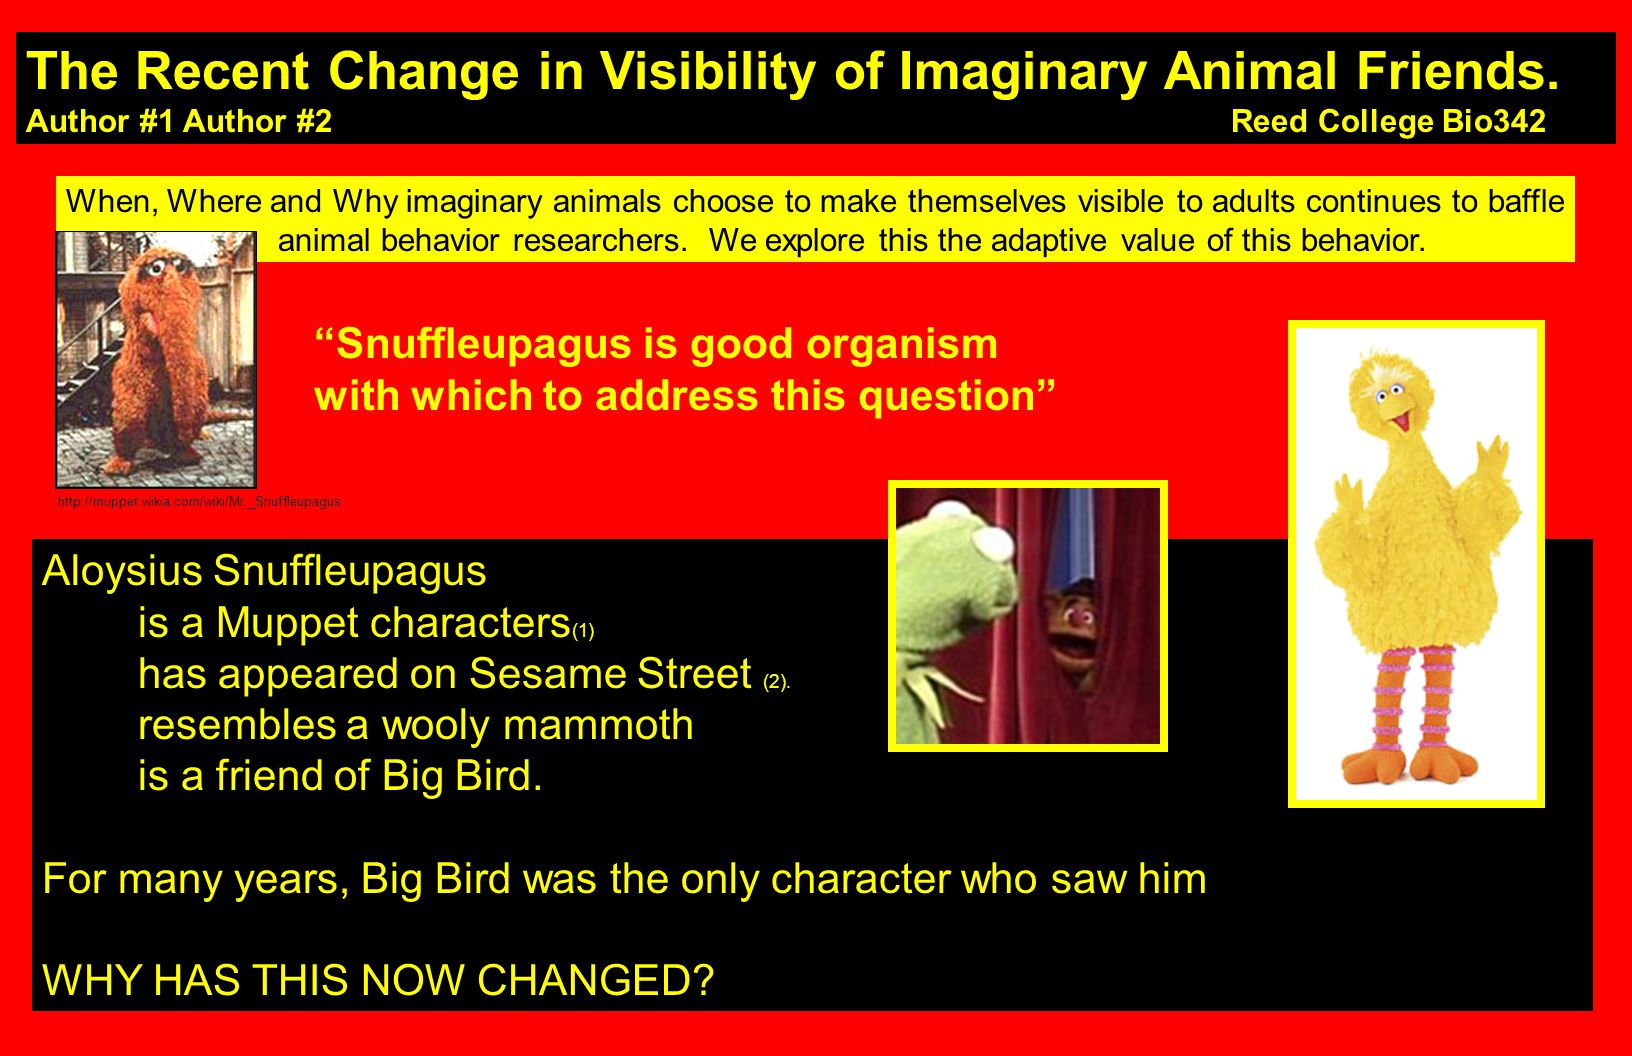 The Recent Change in Visibility of Imaginary Animal Friends.